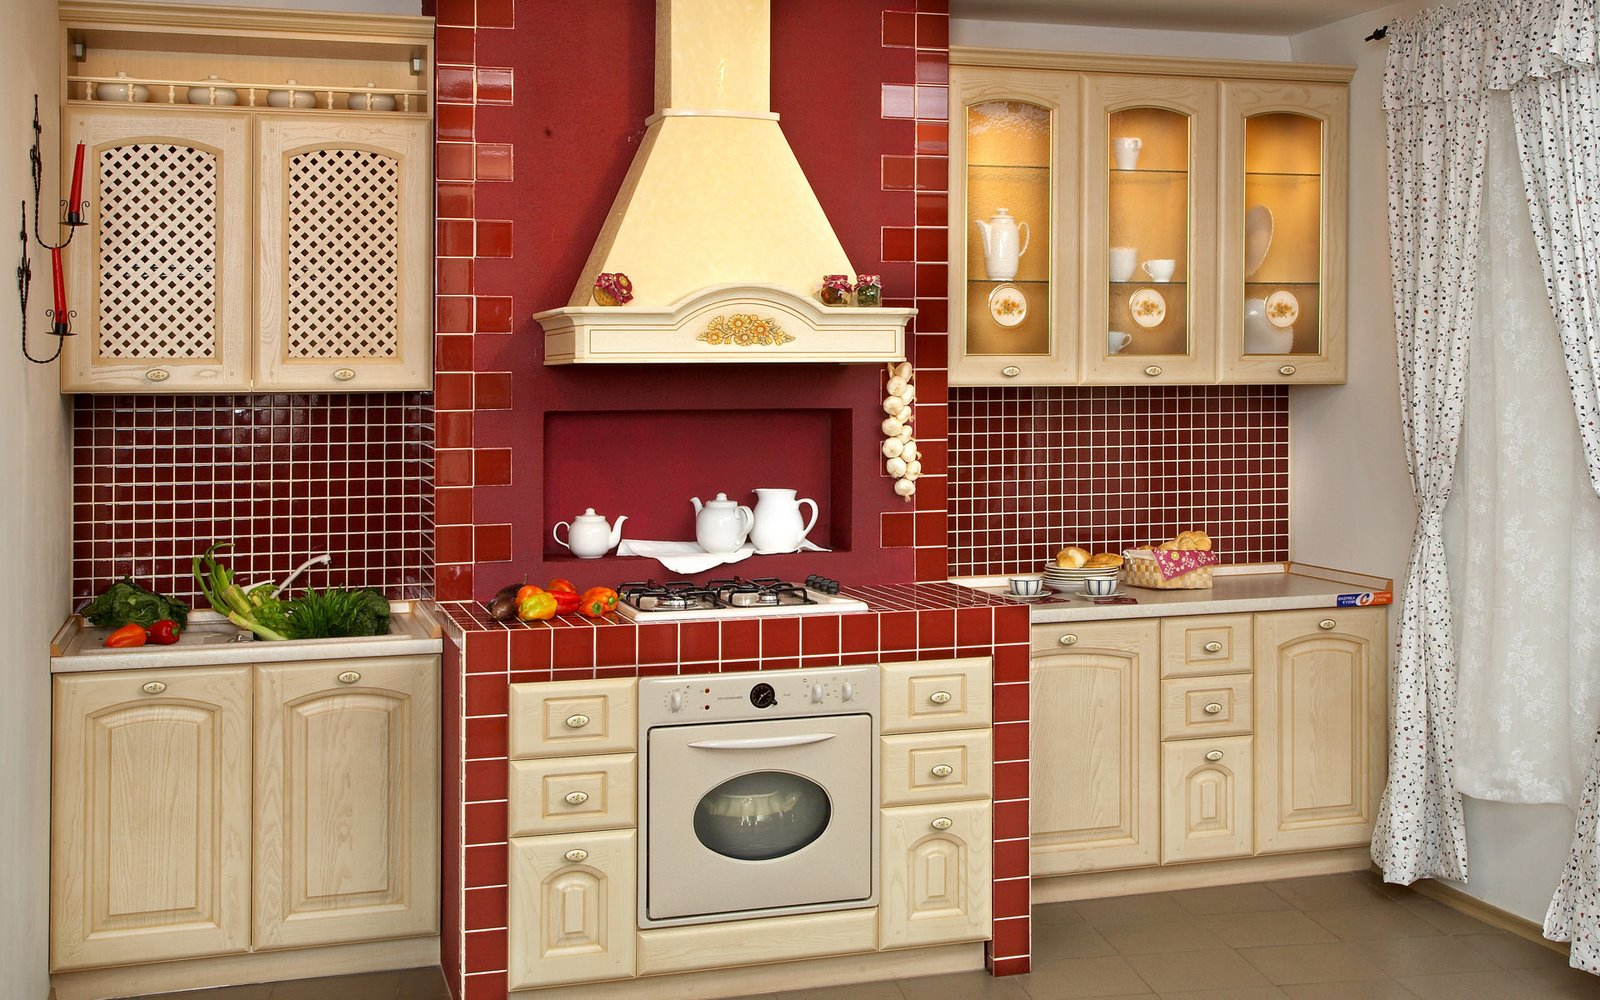 Vintage Kitchens Designs